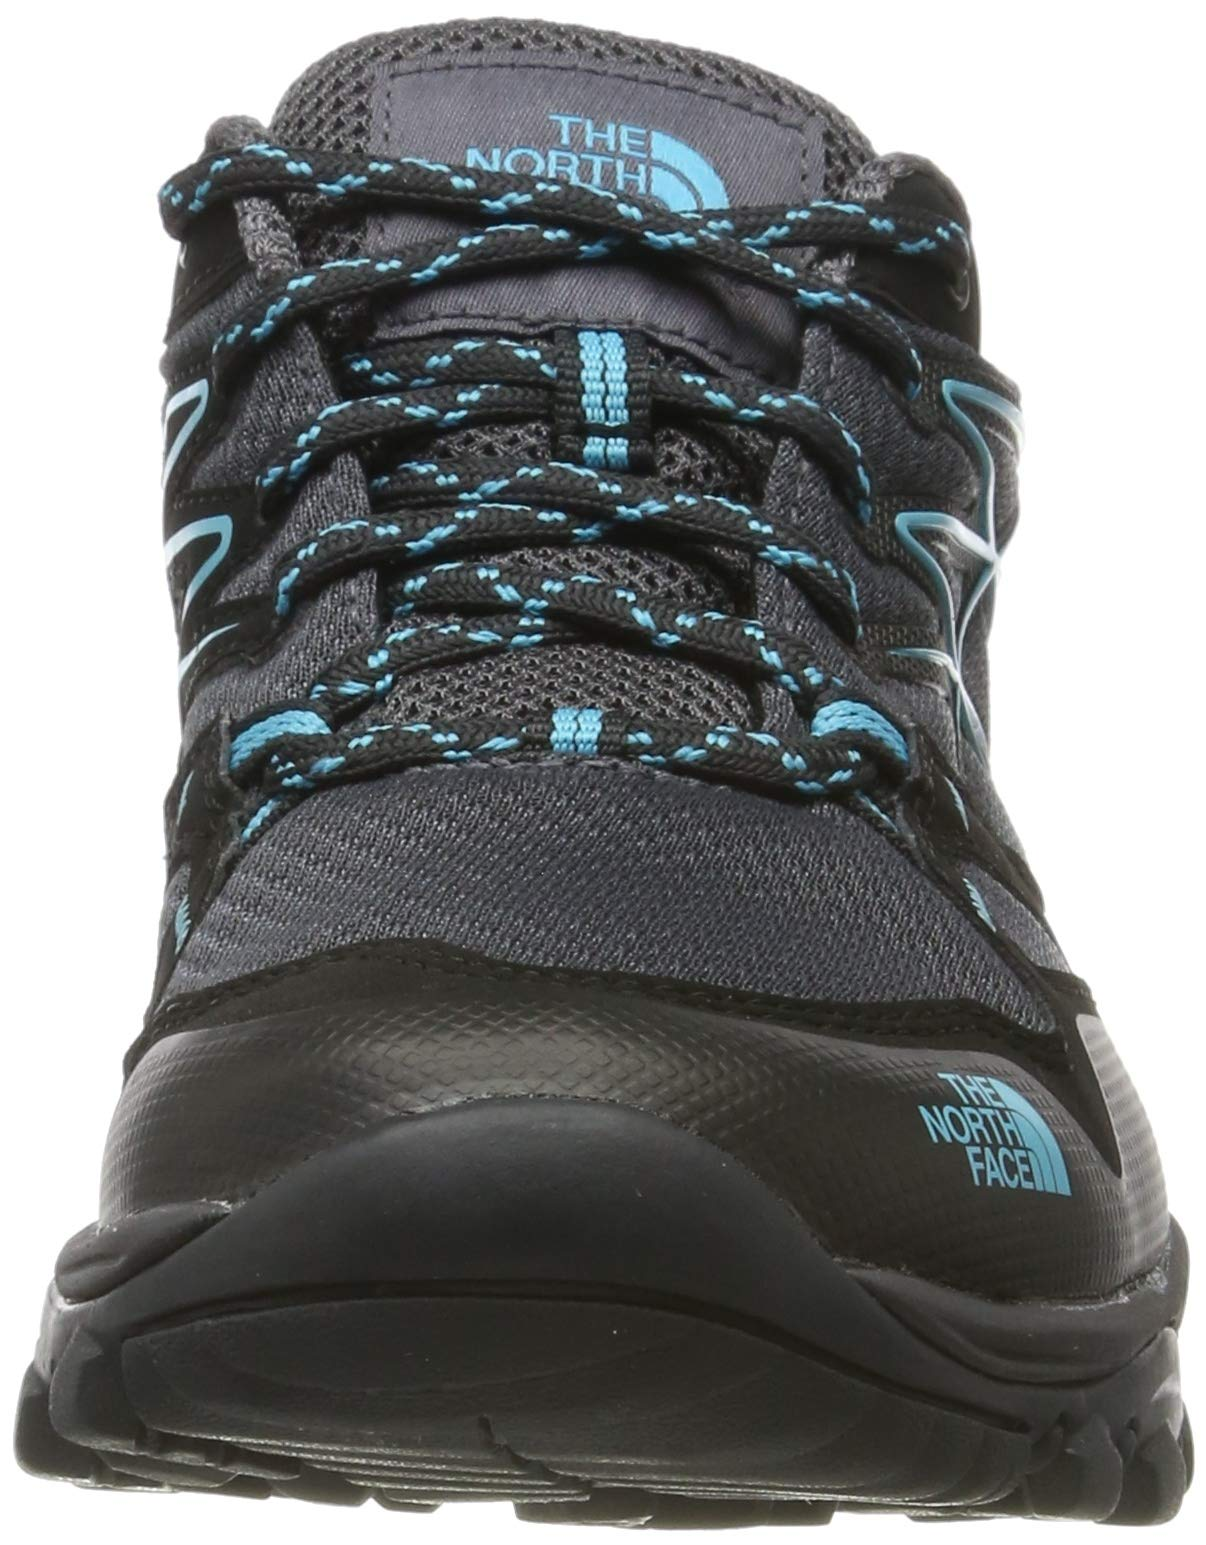 71elqlTIlhL - THE NORTH FACE Women's W Hedgehog Fastpack GTX (EU) Low Rise Hiking Boots